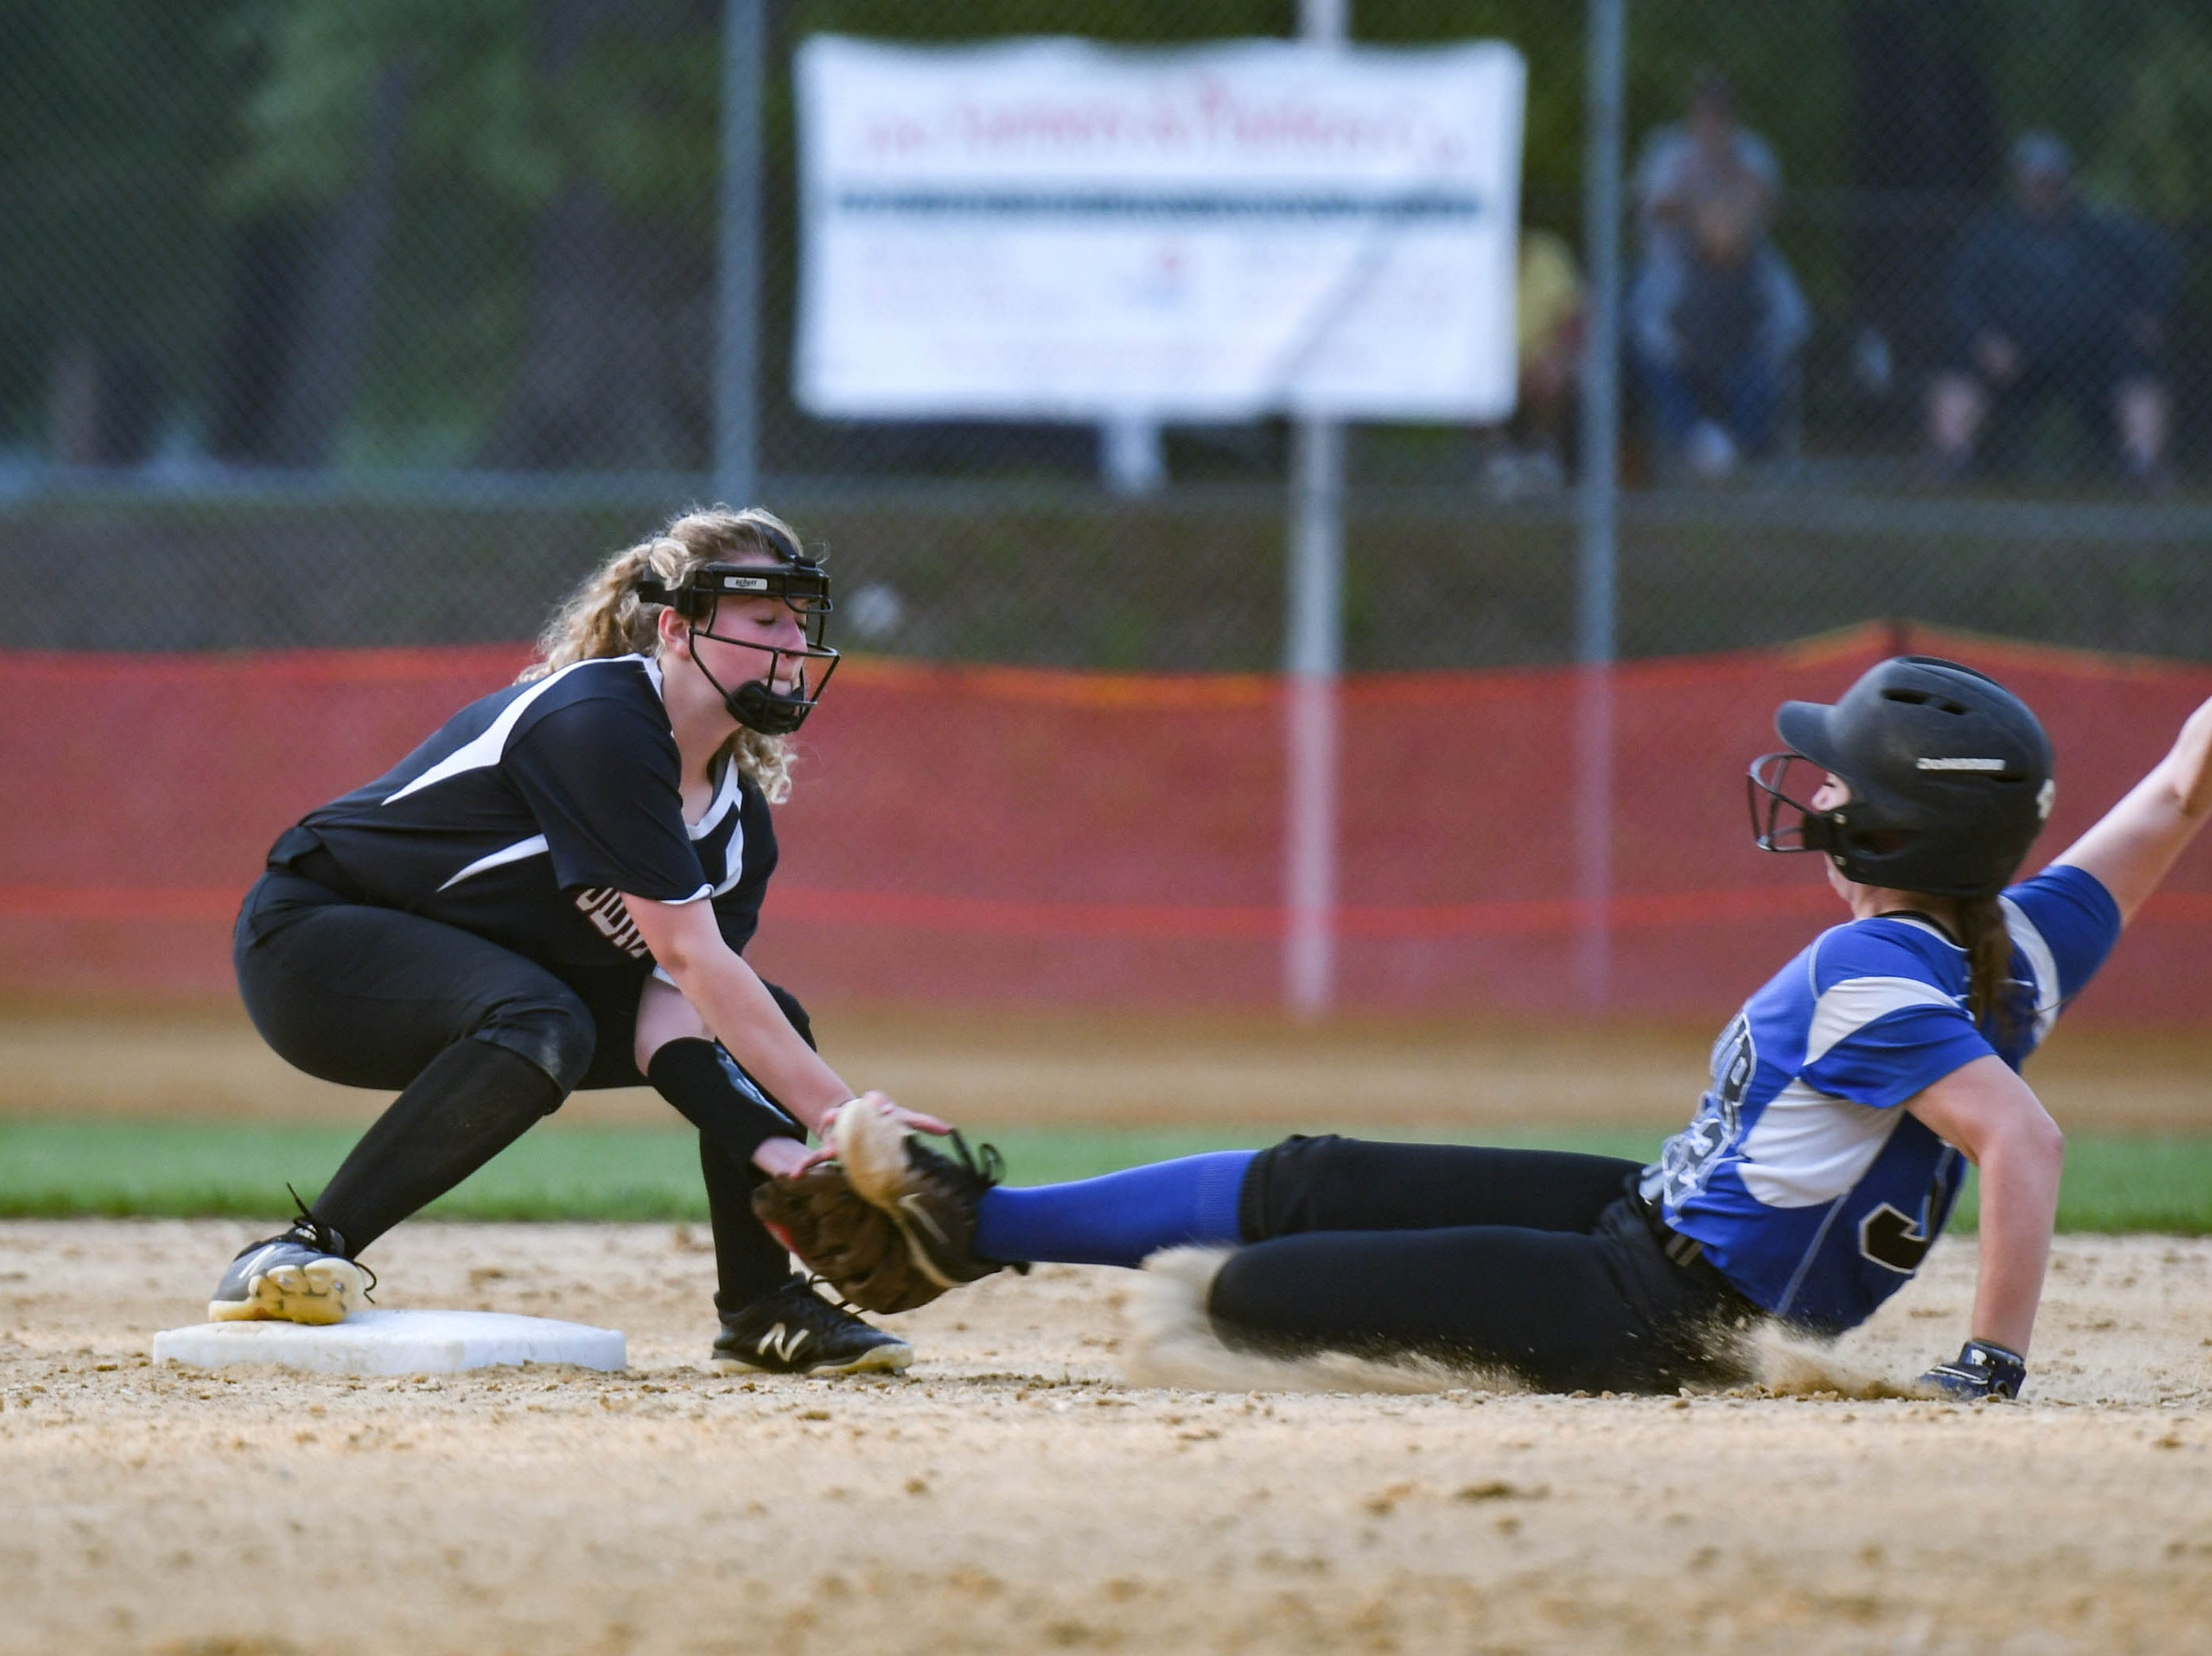 Decatur's Brooklyn Pugner (32) slides into second base in the Bayside Softball Championship game against Colonel Richardson on Wednesday, May 8, 2019. Decatur prevailed with a score of 4 to 1.